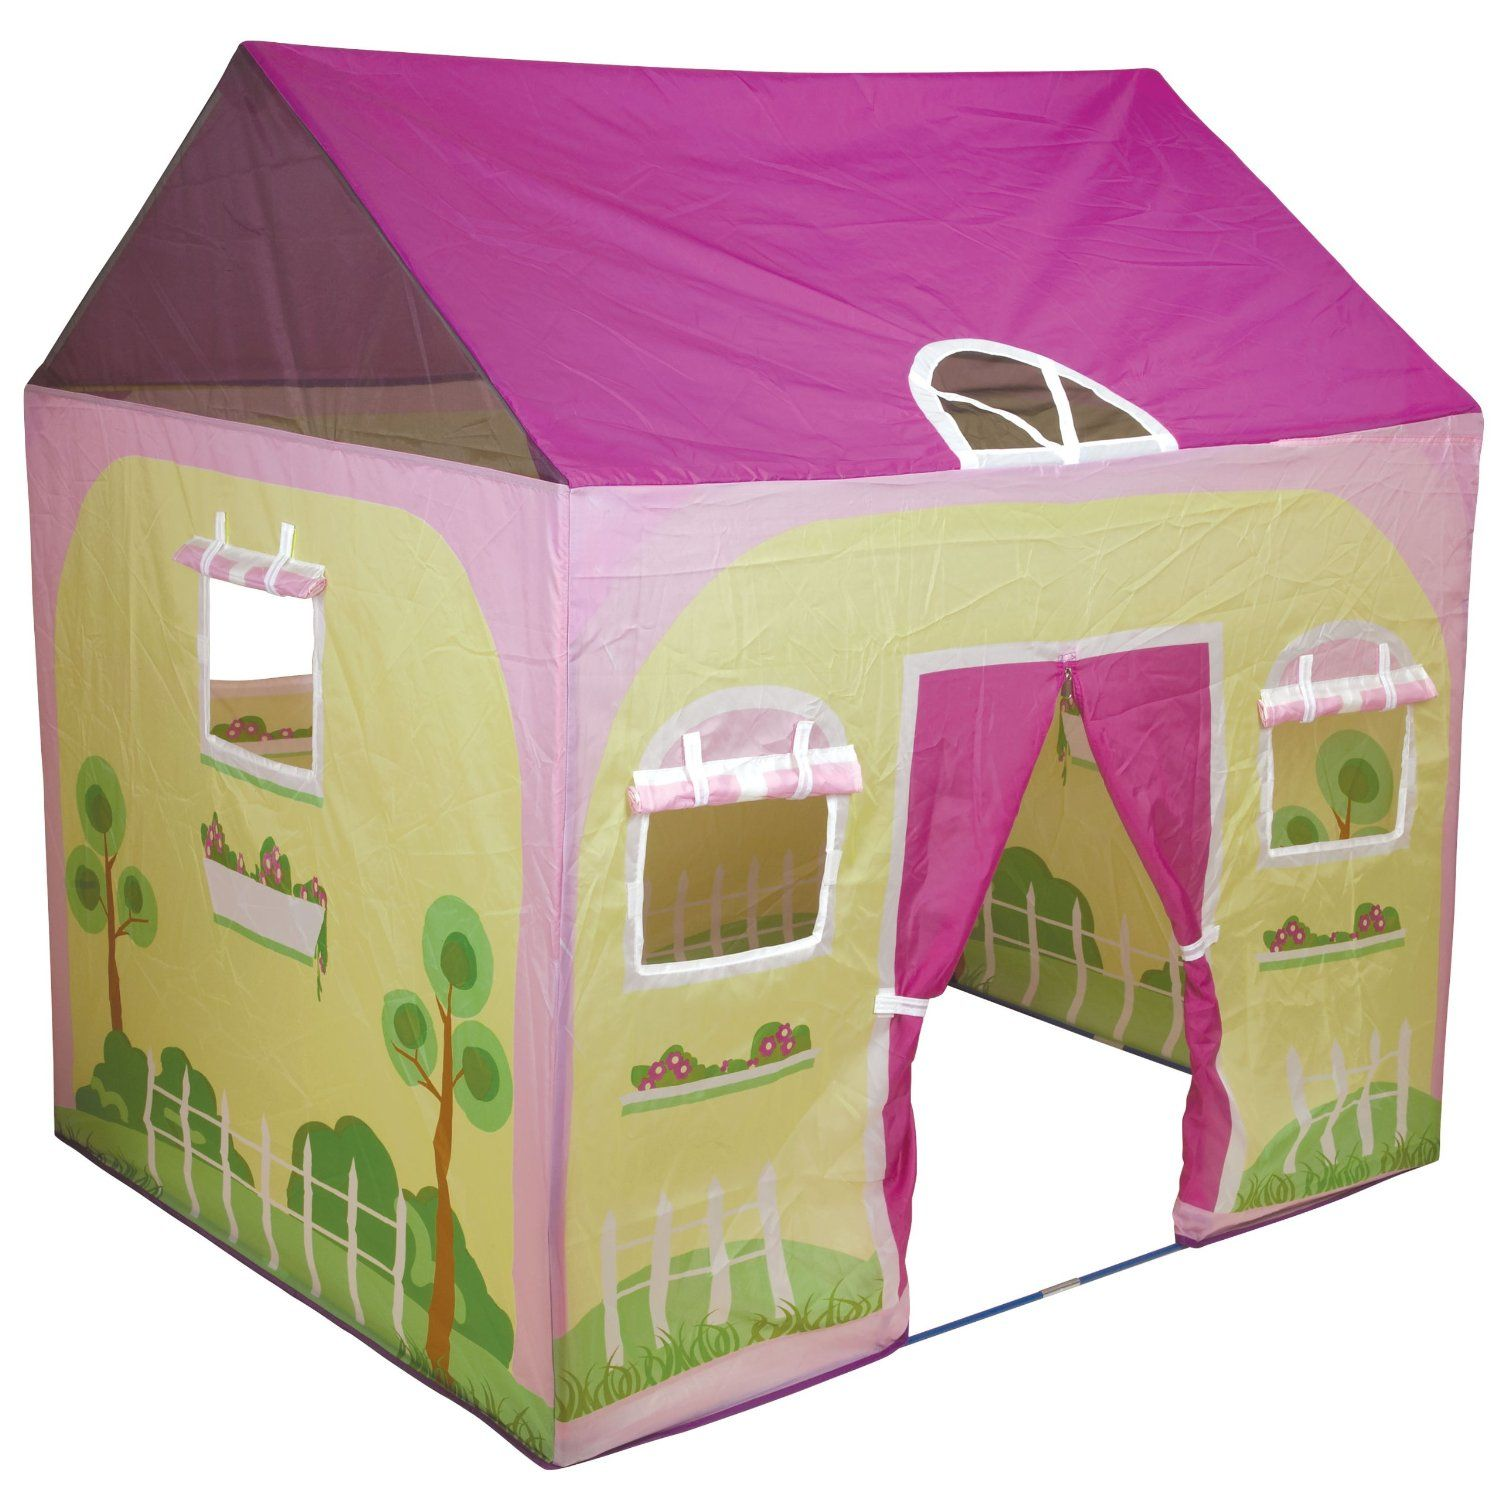 Cottage House Kids Play Tent This Is A Welcome Addition To Any